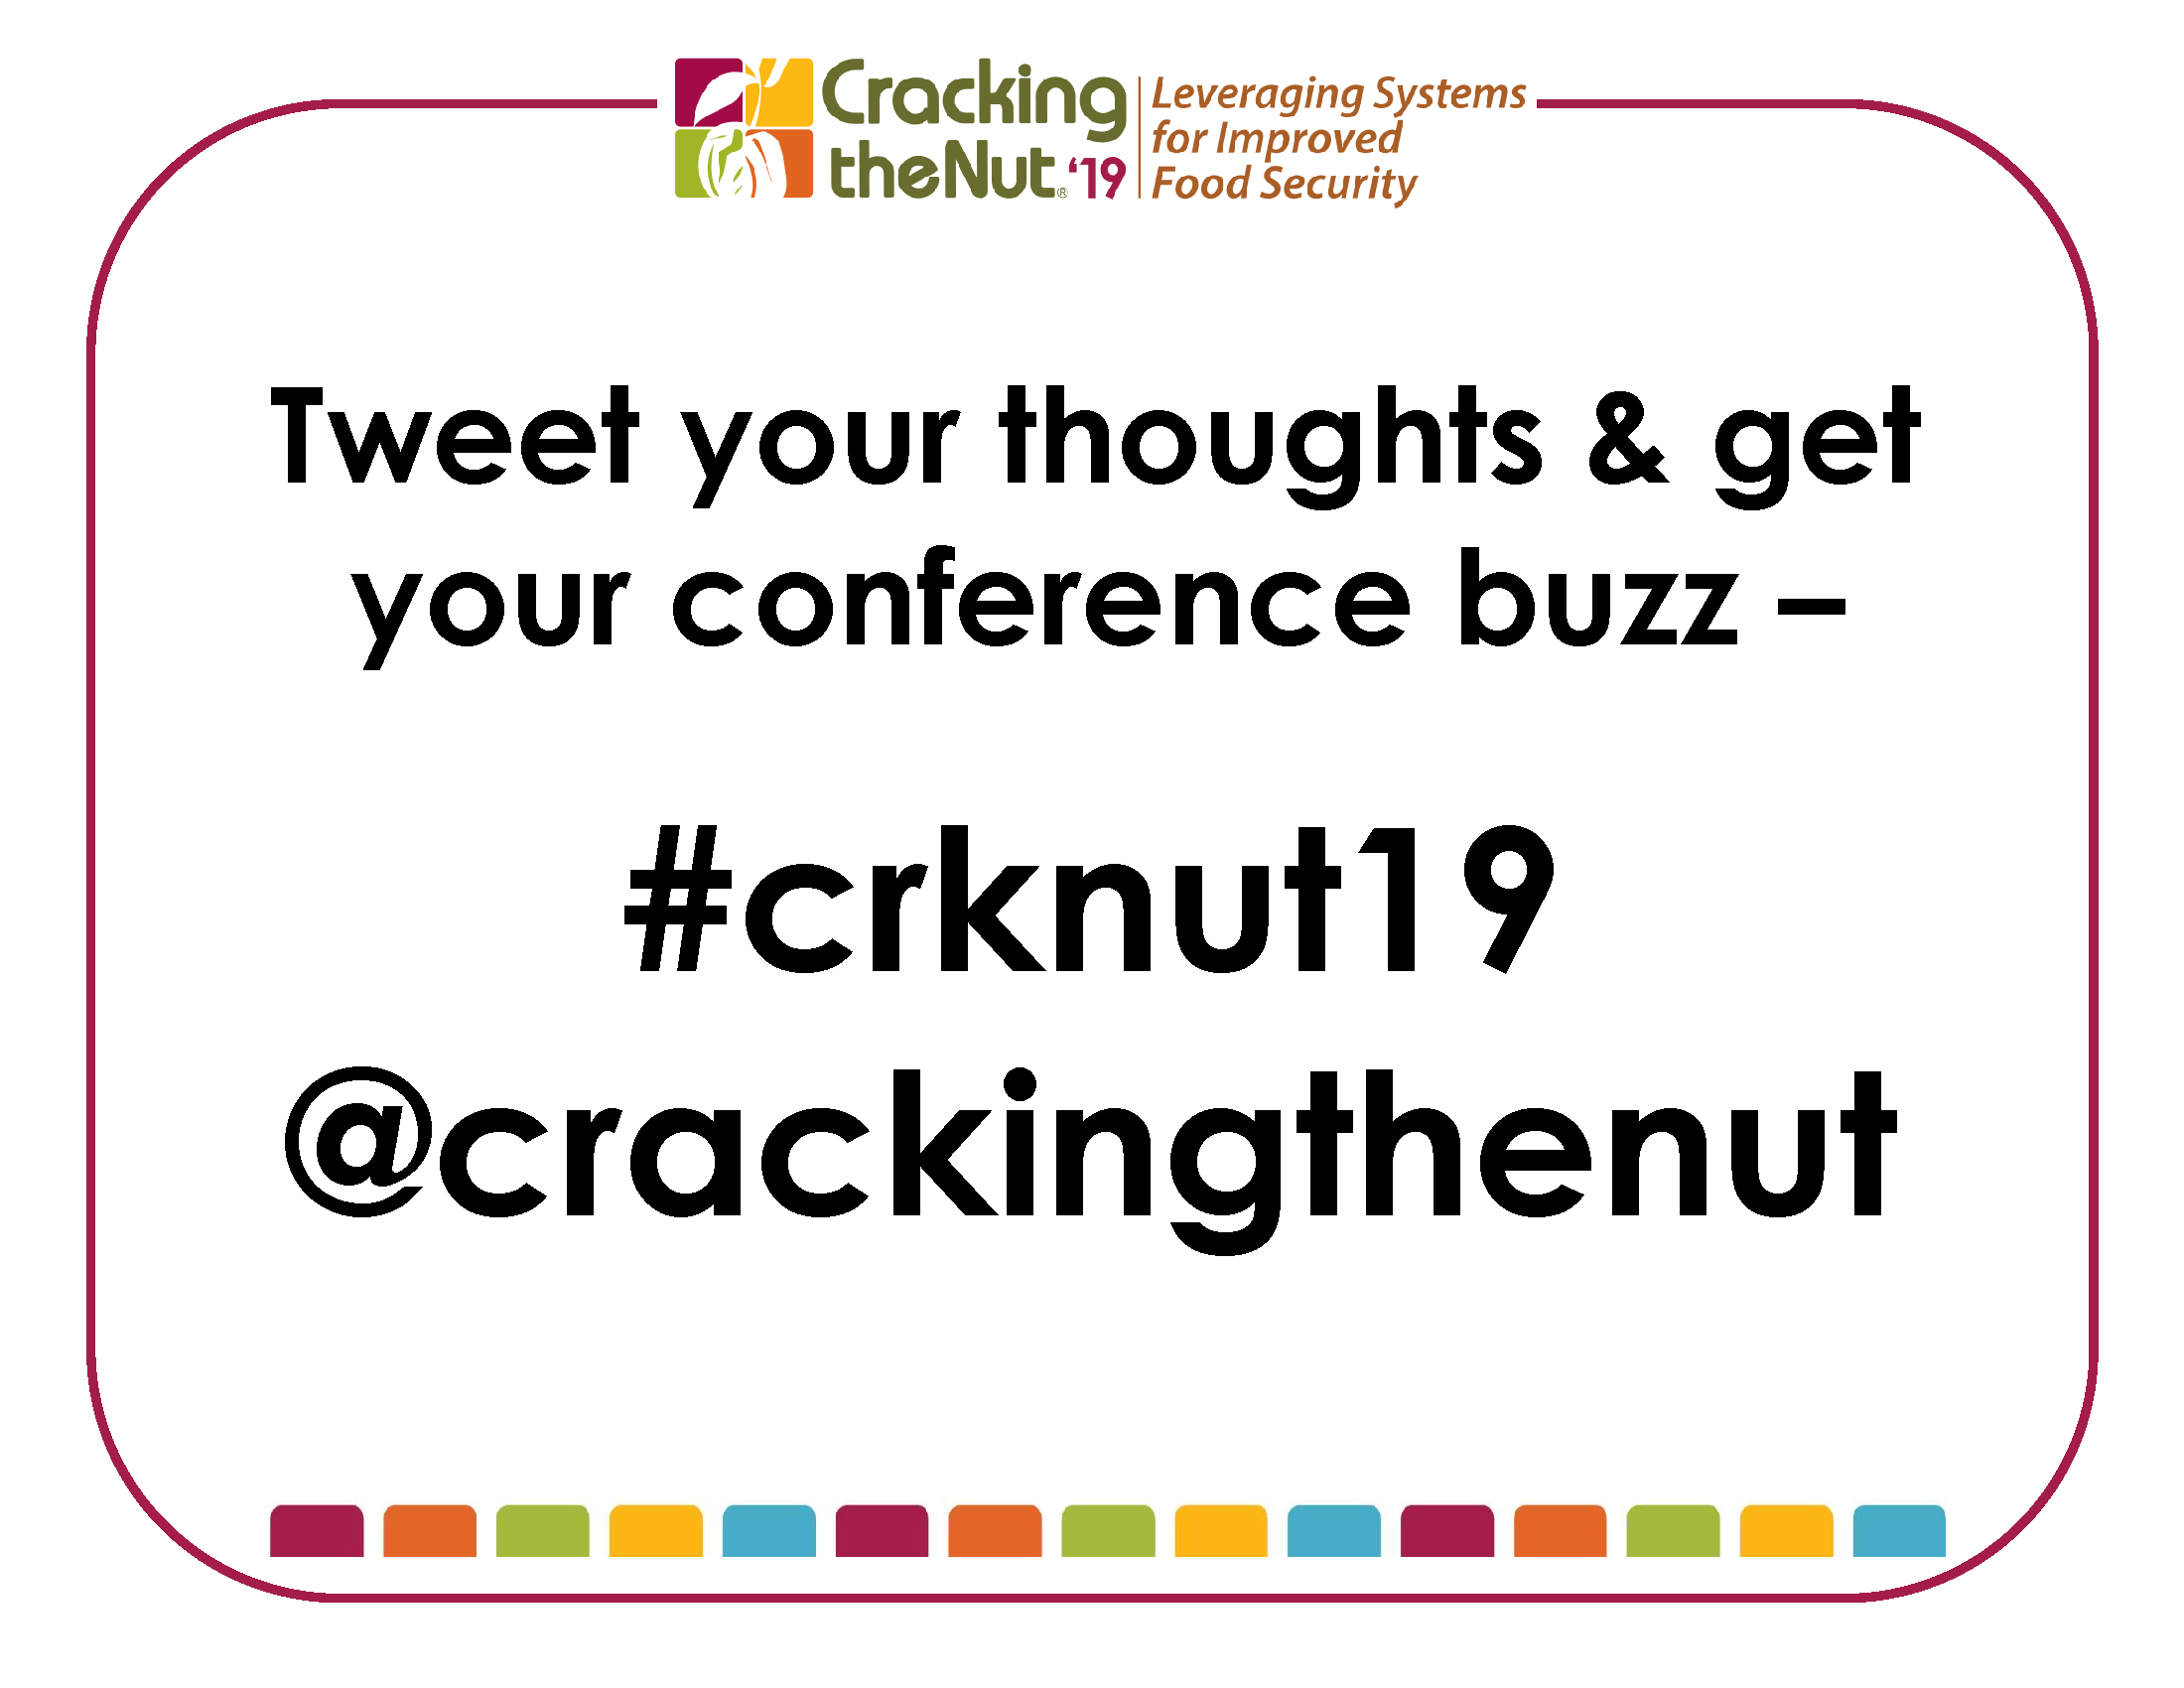 Tweet your thoughts_#crknut19